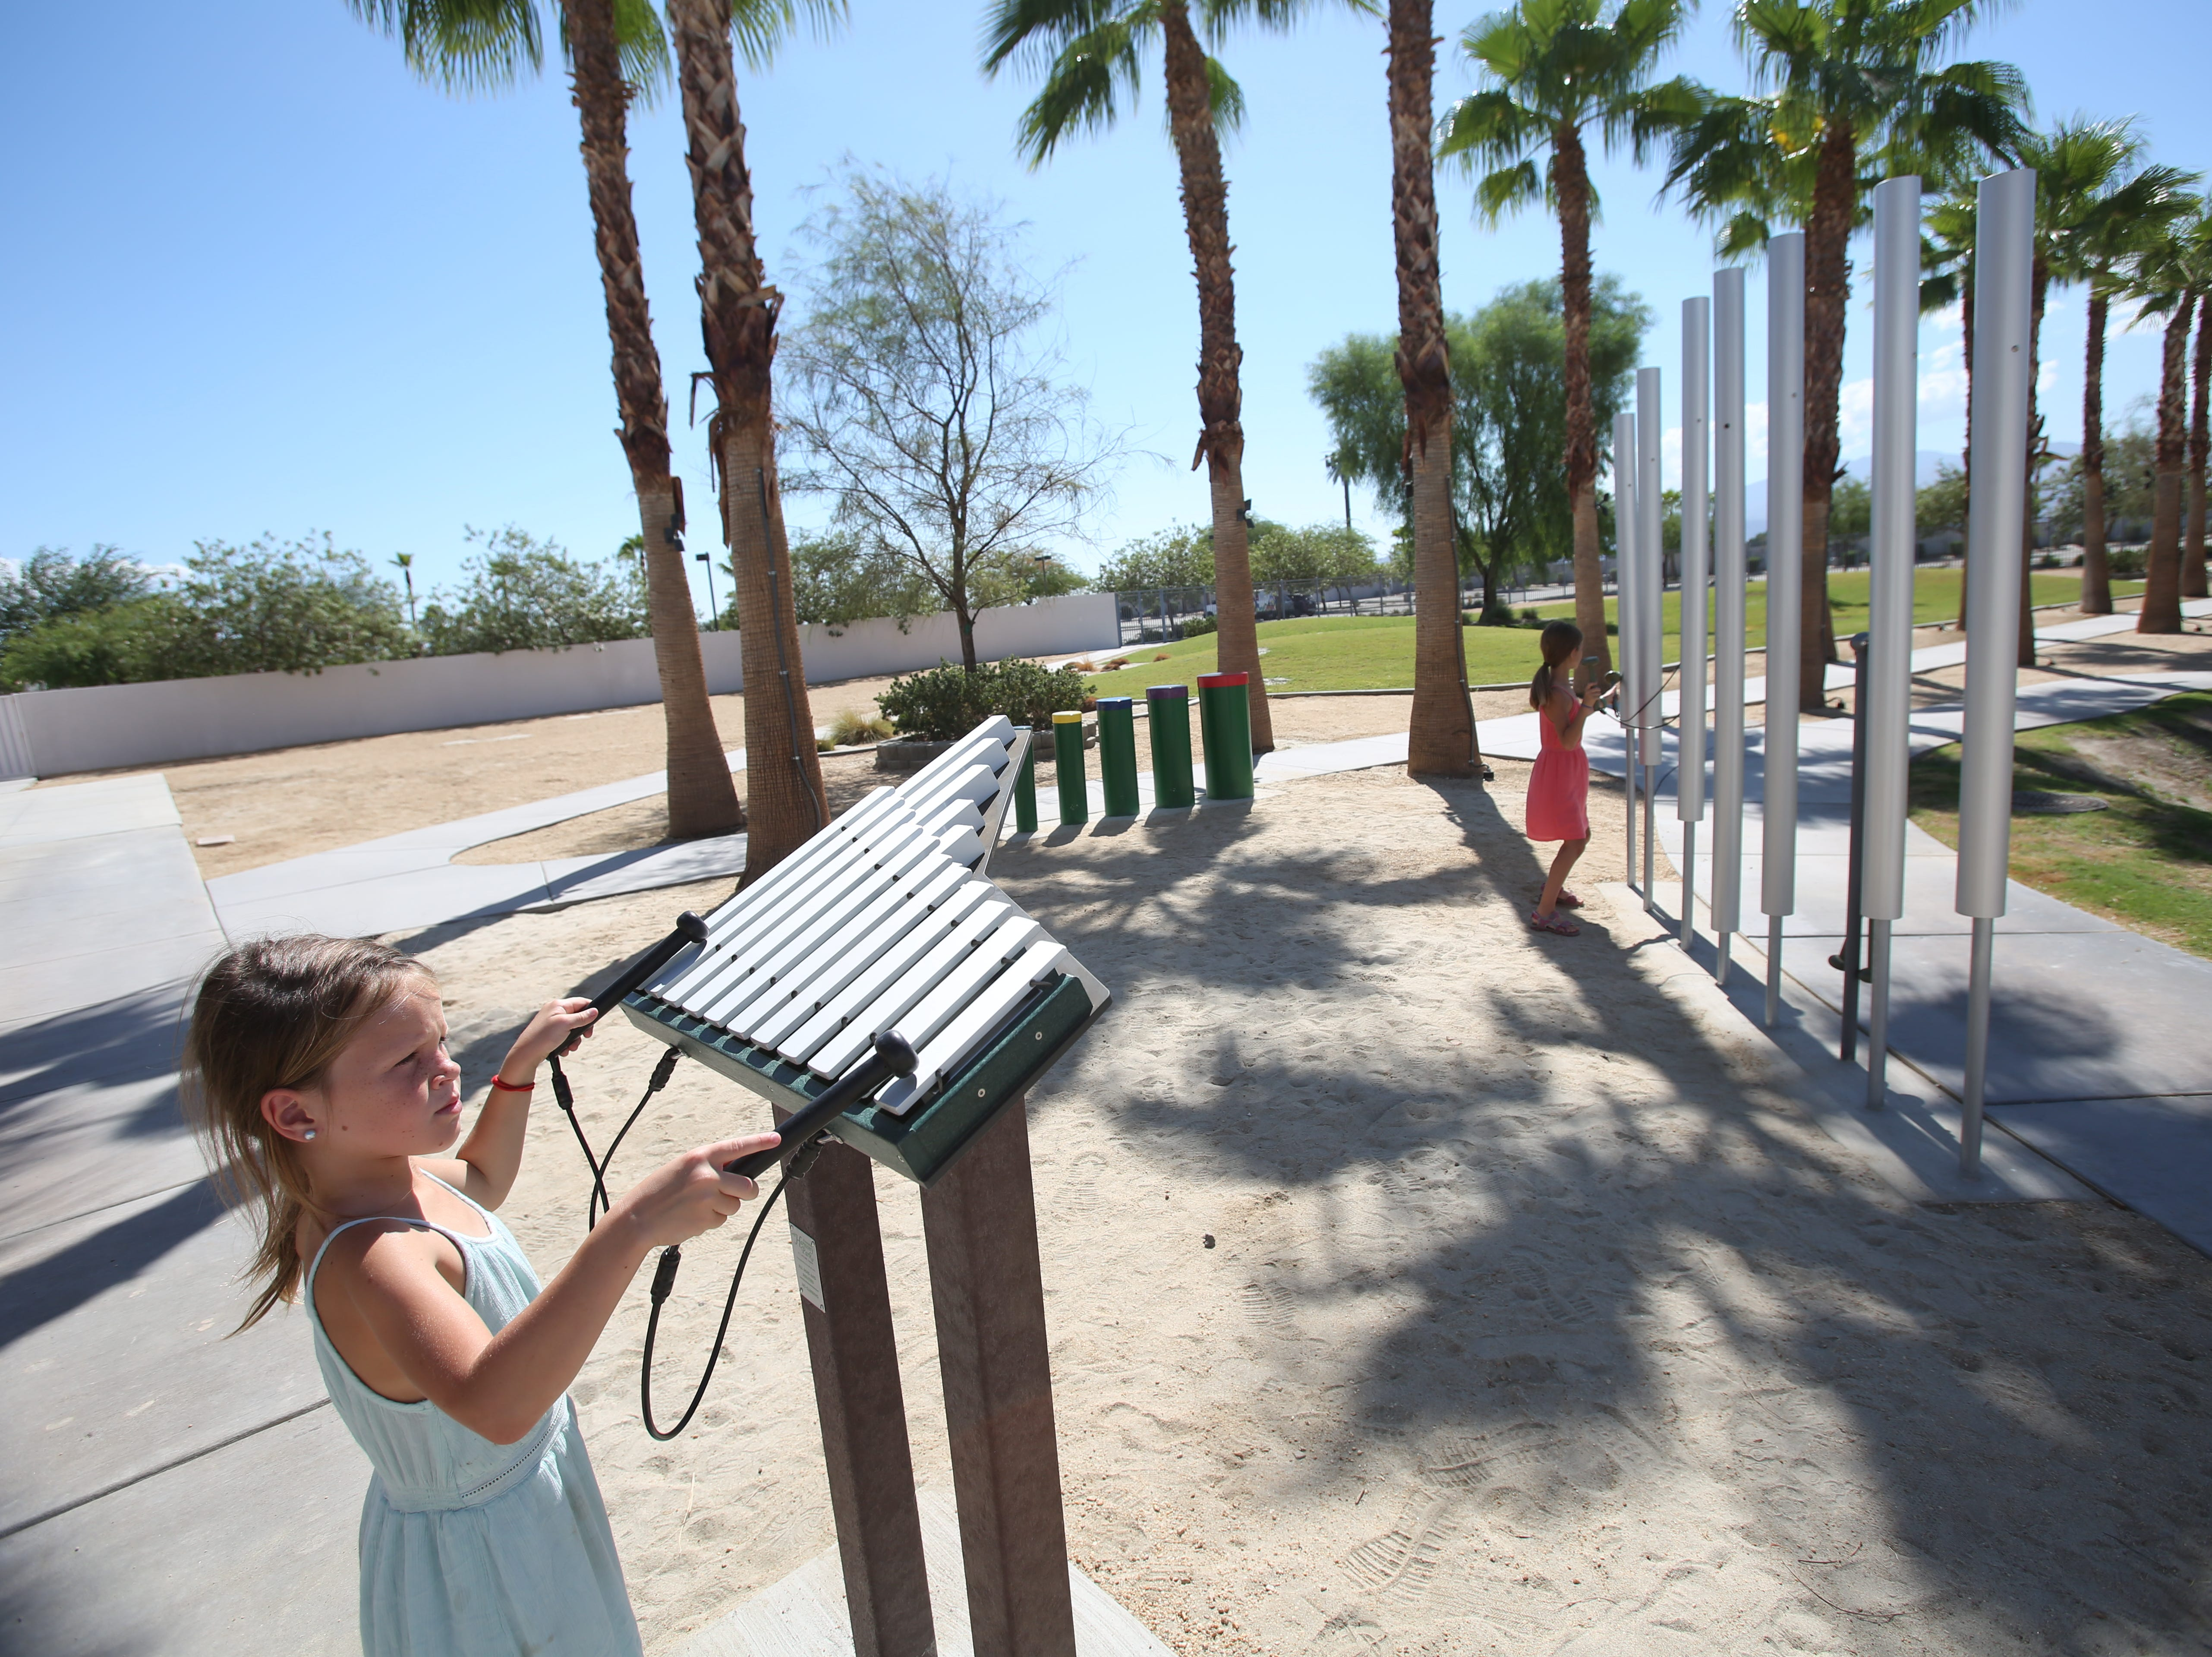 Ashley Demboski, 6 and her sister Allison Demboski, 9 make music at the Children's Discovery Museum in Rancho Mirage on September 22, 2018.